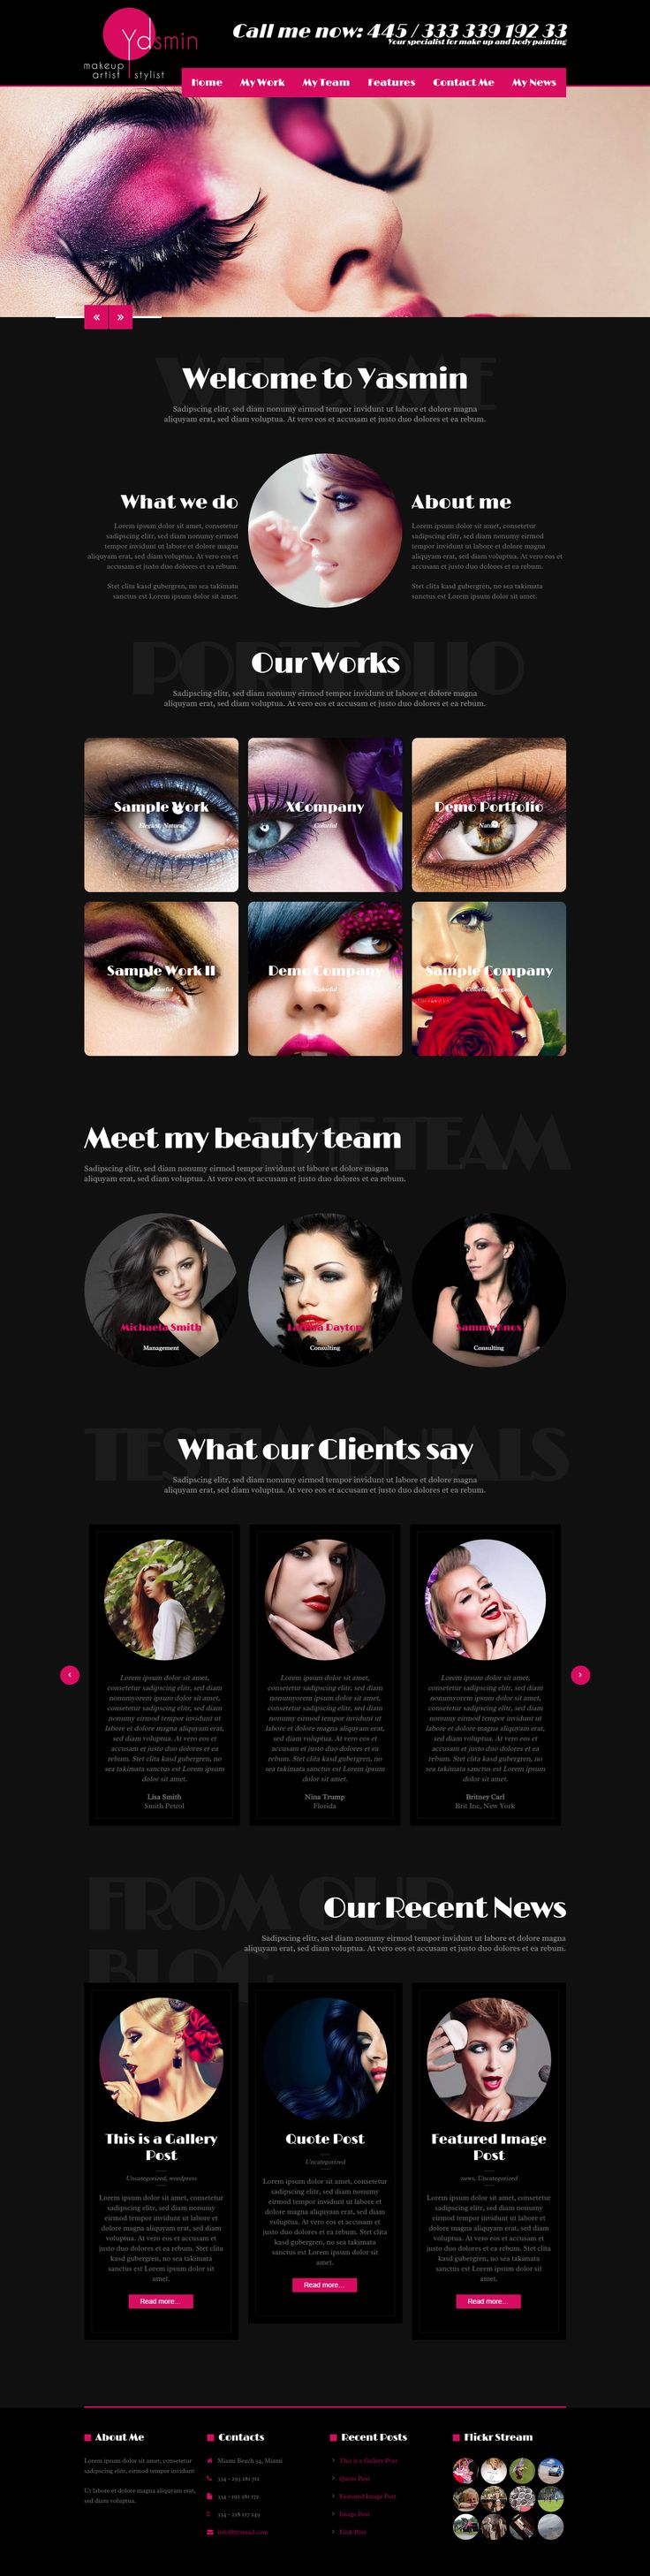 """Yasmin - beauty salon & makeup artist  WordPress theme. Yasmin has a dark designed layout with red highlights. So it """"glows"""" to showcase your pretty work in a perfect way. The layout is made for hairdresser, haircutter, cosmeticians, beauticians, makeup artists, nail designer and all other beauty related businesses.   #WP #WordPress #Webdesign #Makeup artist #beauty #hairdresser #cosmetician #beautician #barber"""